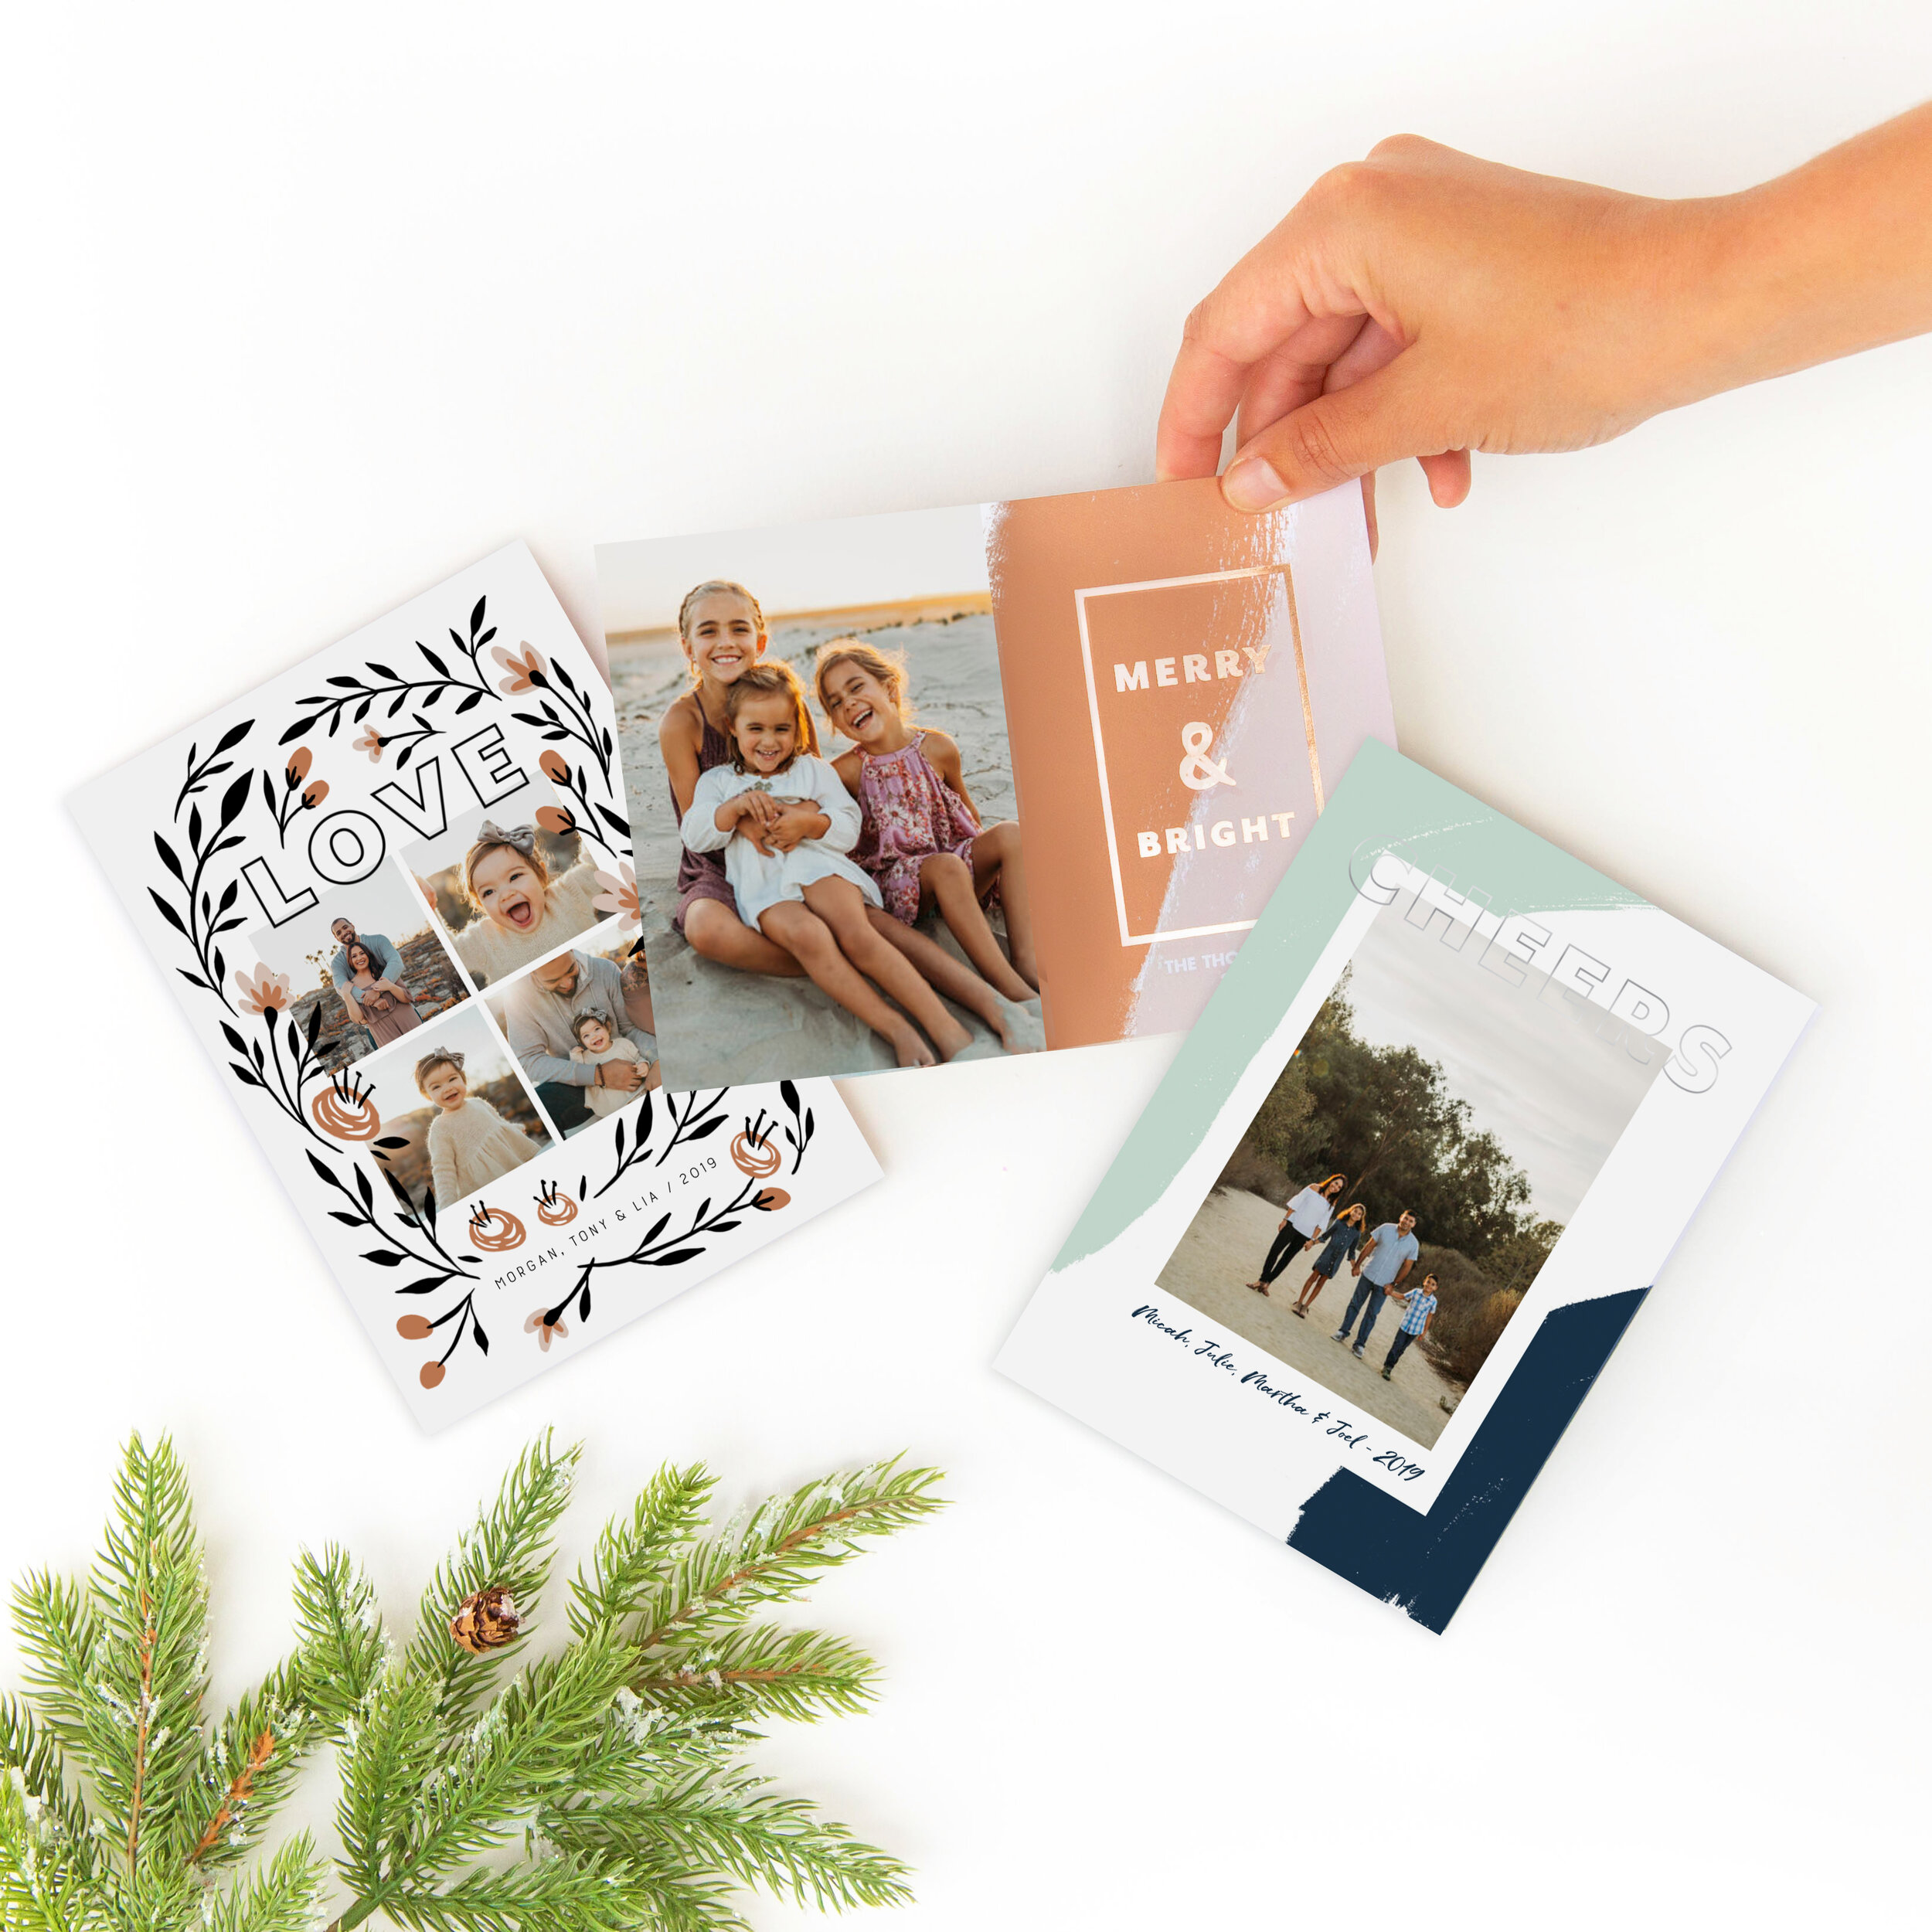 The Top 5 Holiday Card Trends For 2020 Mixbook Inspiration